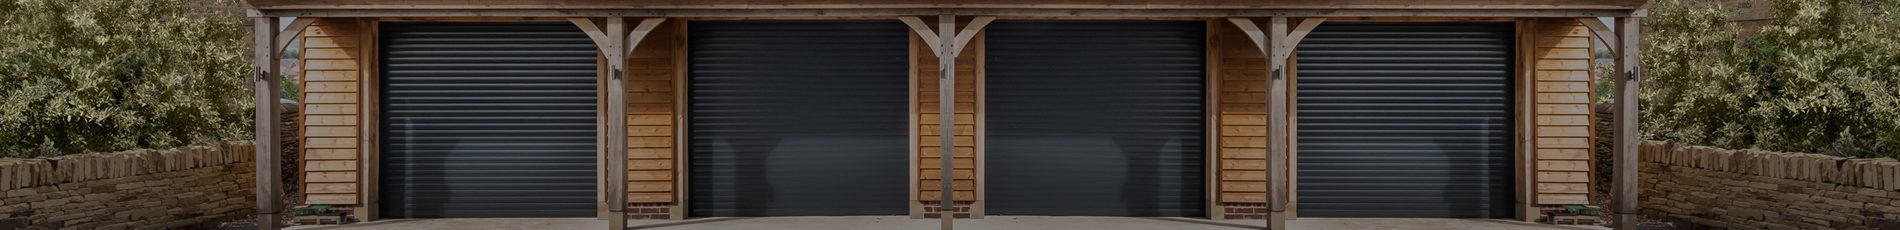 Roller Garage Doors Swindon